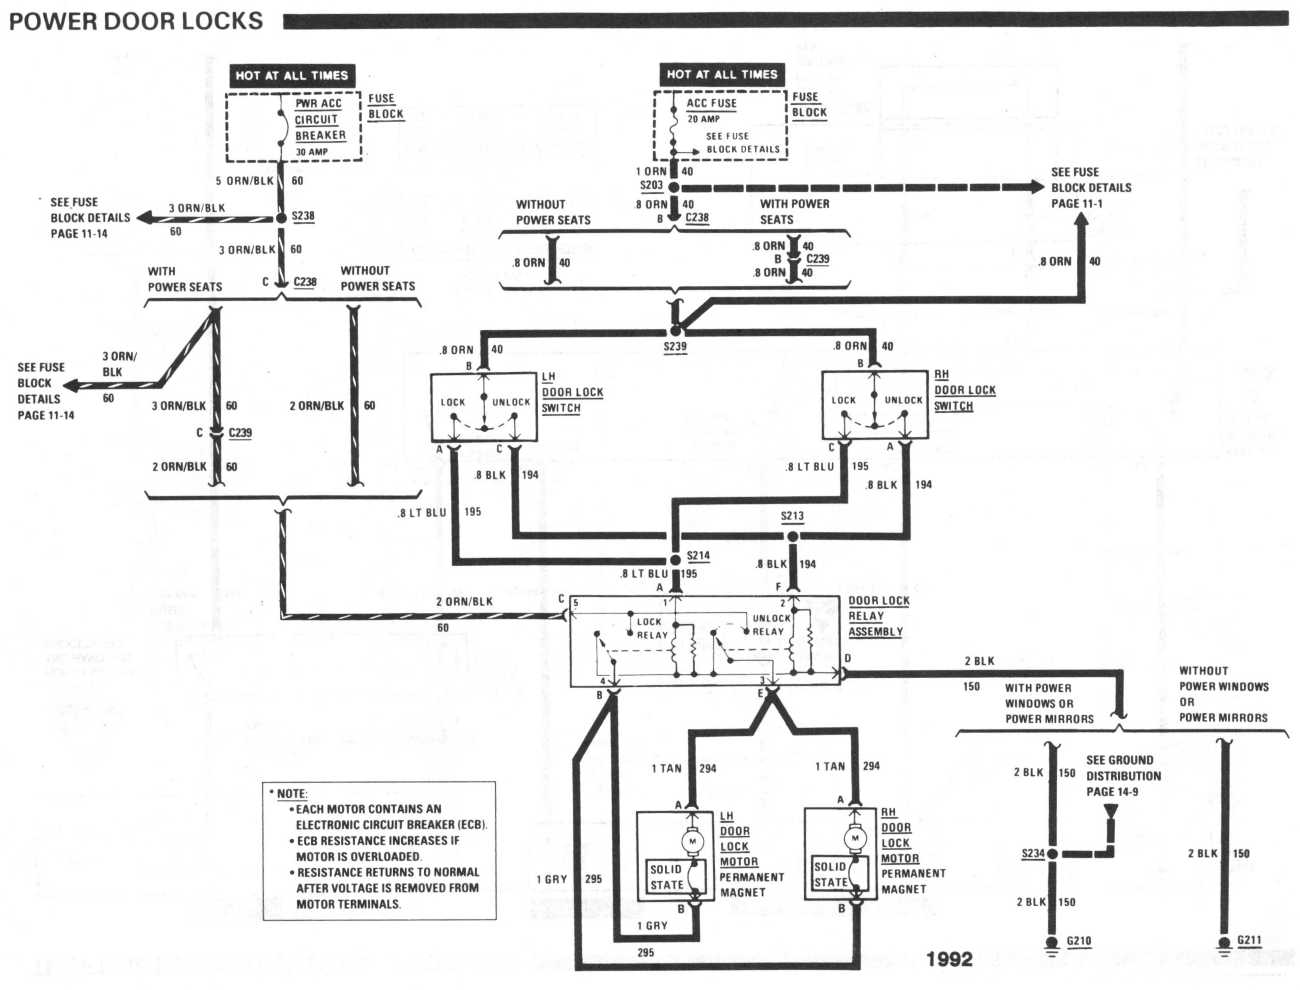 2001 F150 Power Door Lock Wiring Diagram : 40 Wiring